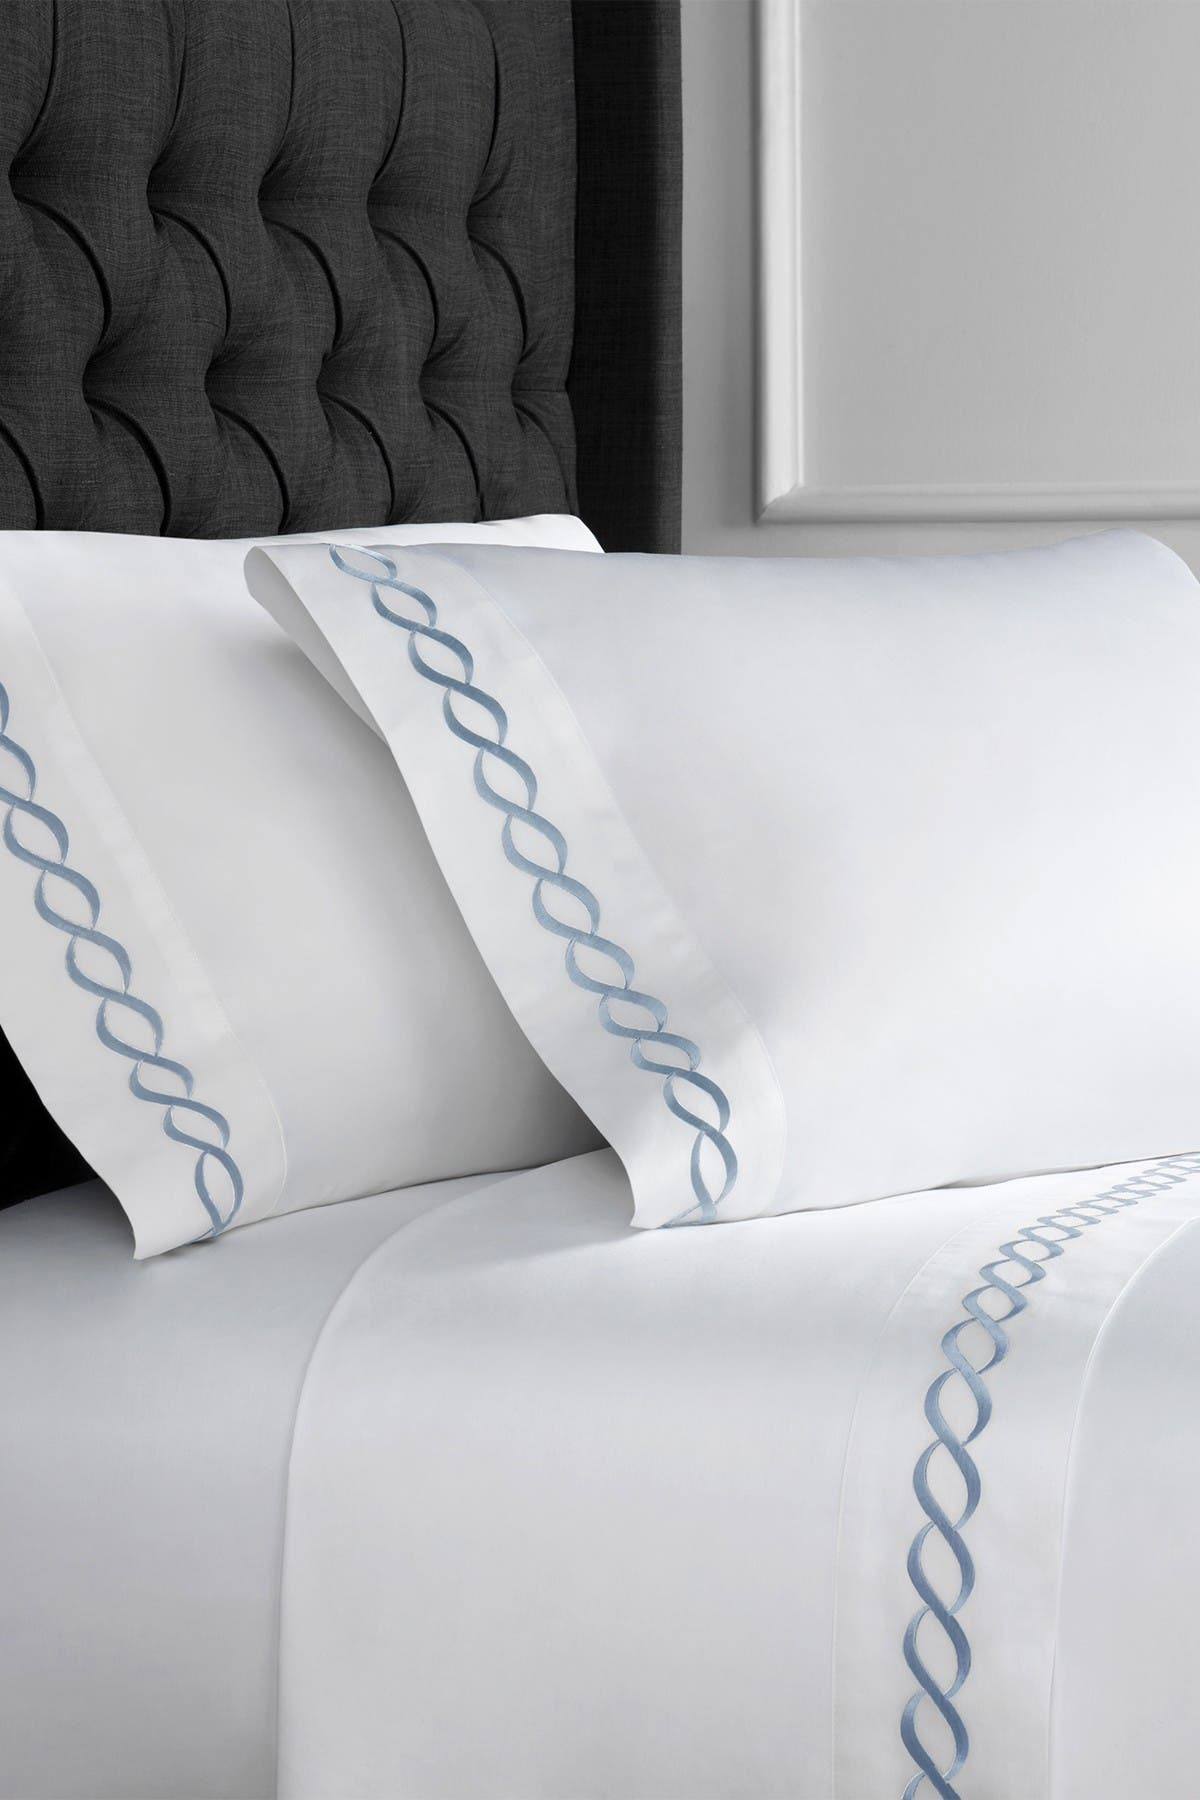 Image of Melange Home King 600 Thread Count Cotton Rope Embroidered Sheet 4-Piece Set